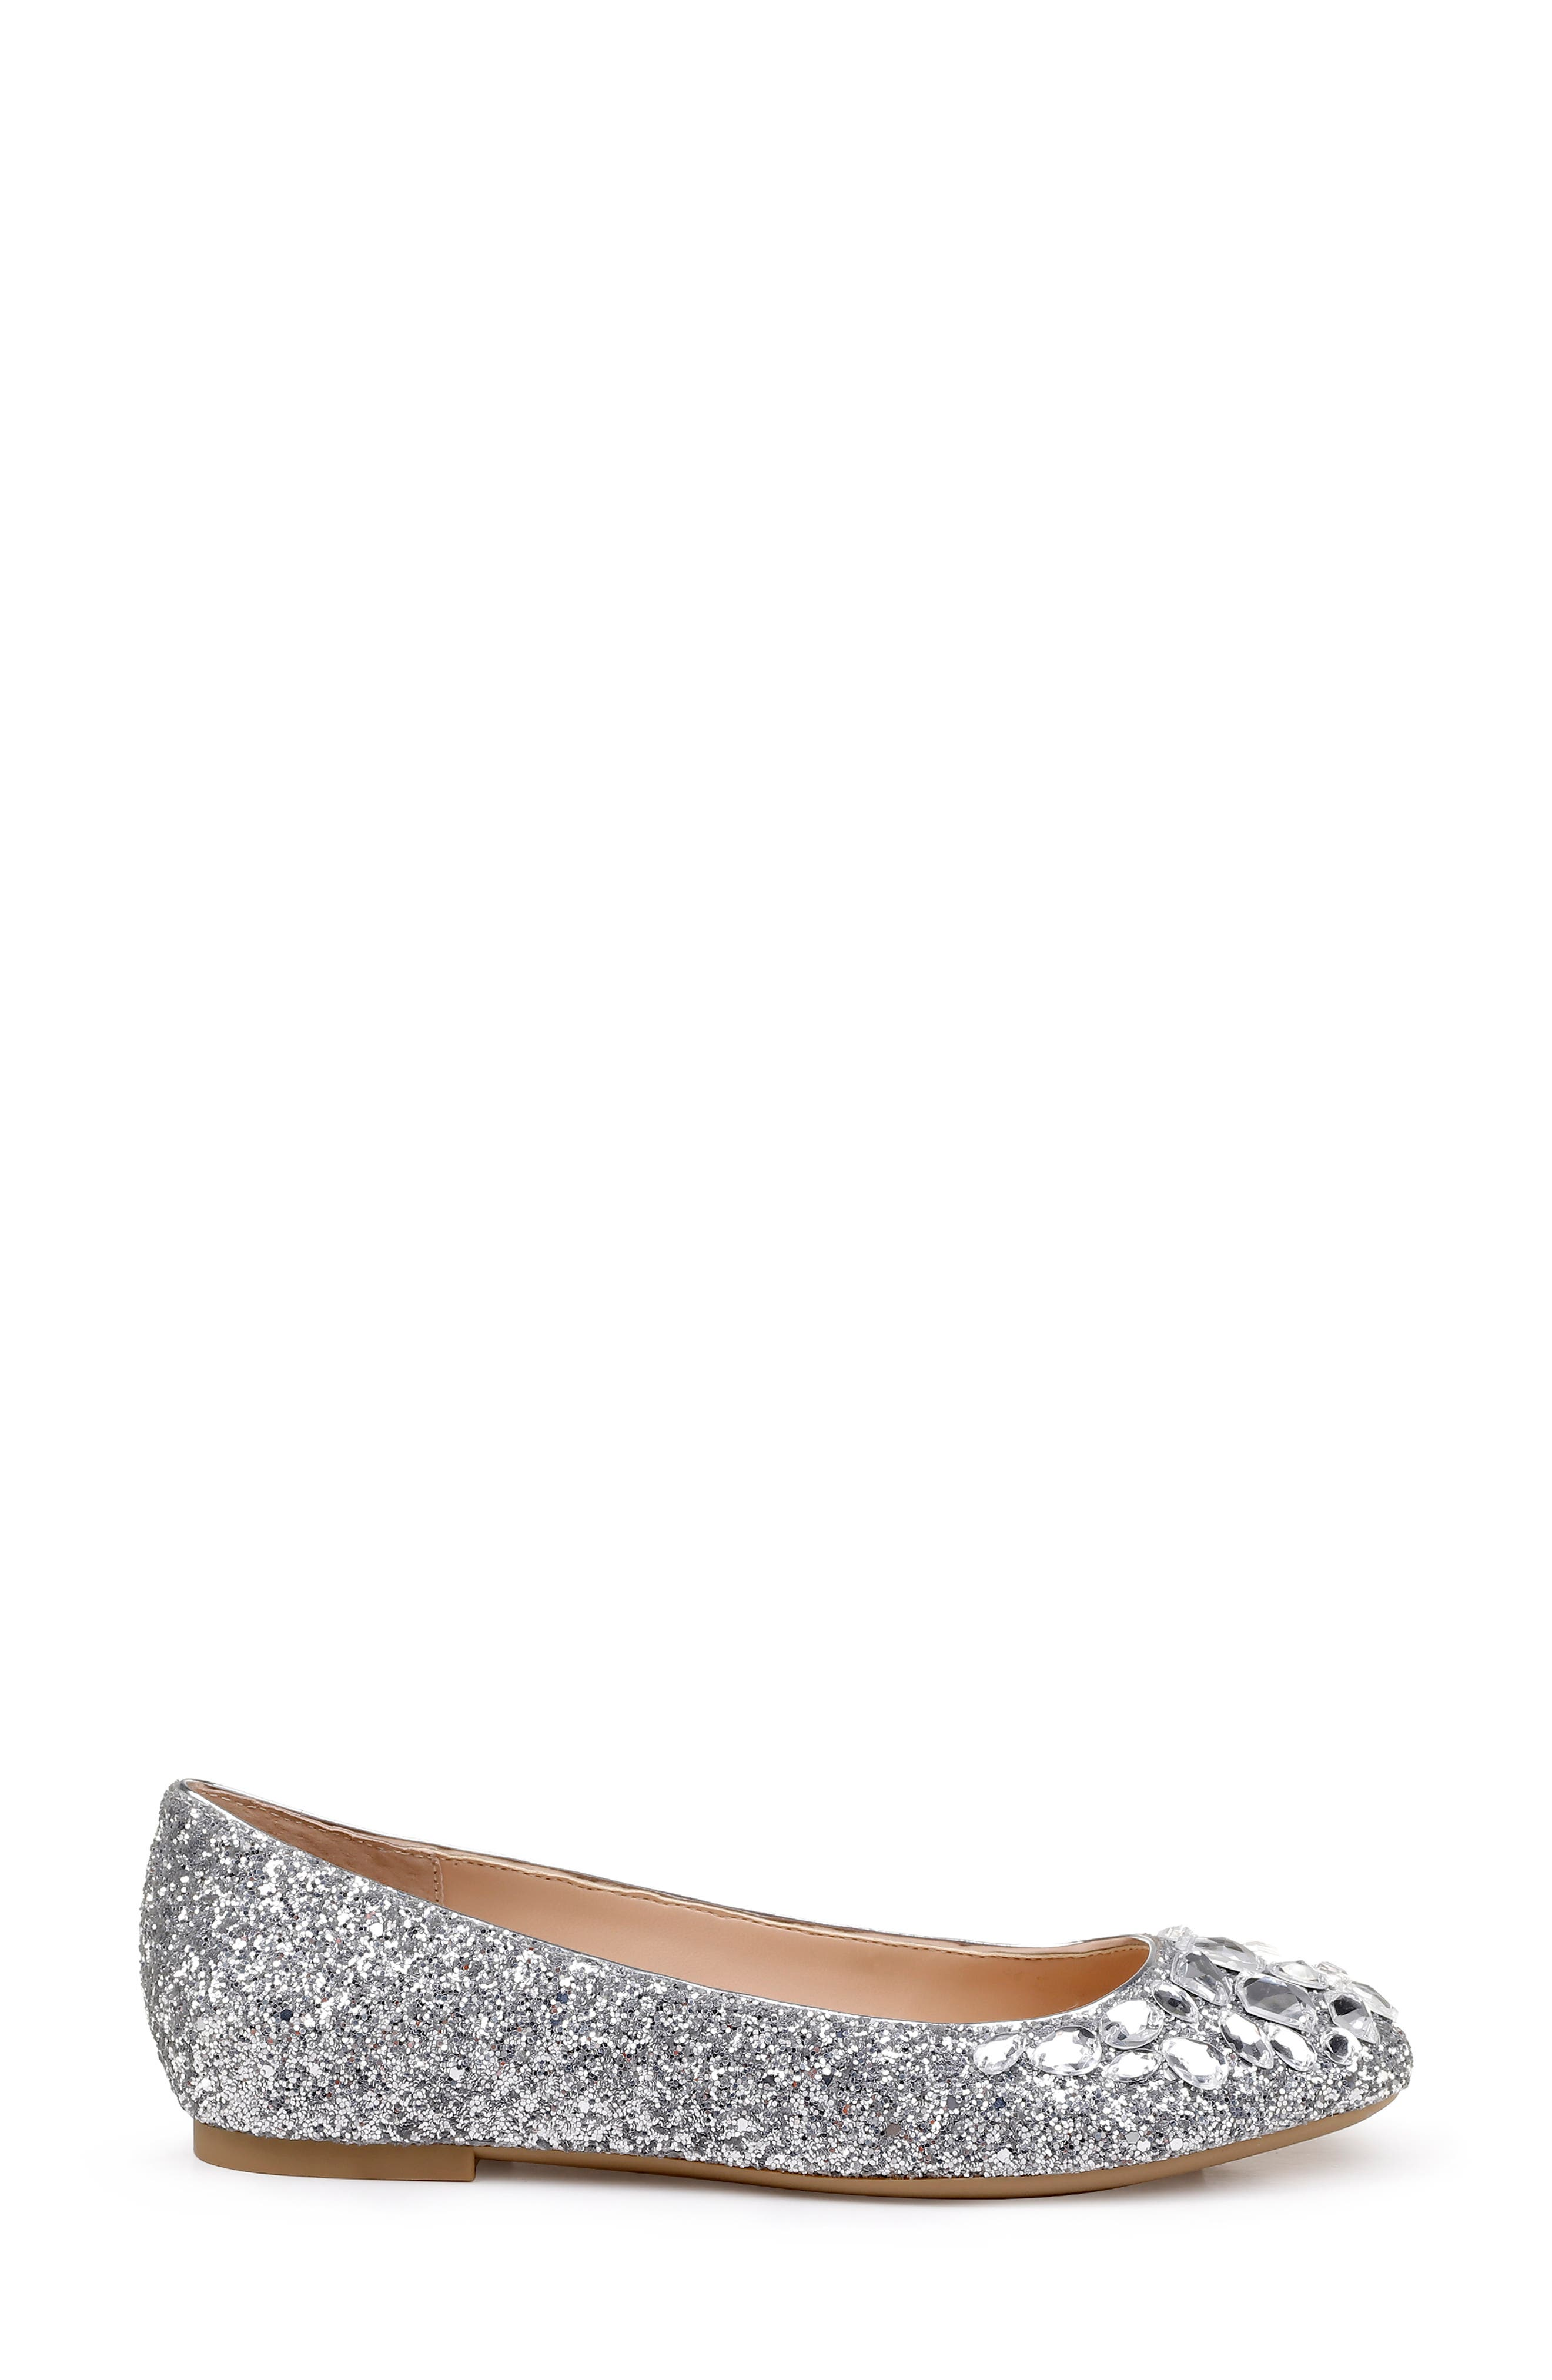 JEWEL BADGLEY MISCHKA, Mathilda Embellished Ballet Flat, Alternate thumbnail 3, color, SILVER GLITTER